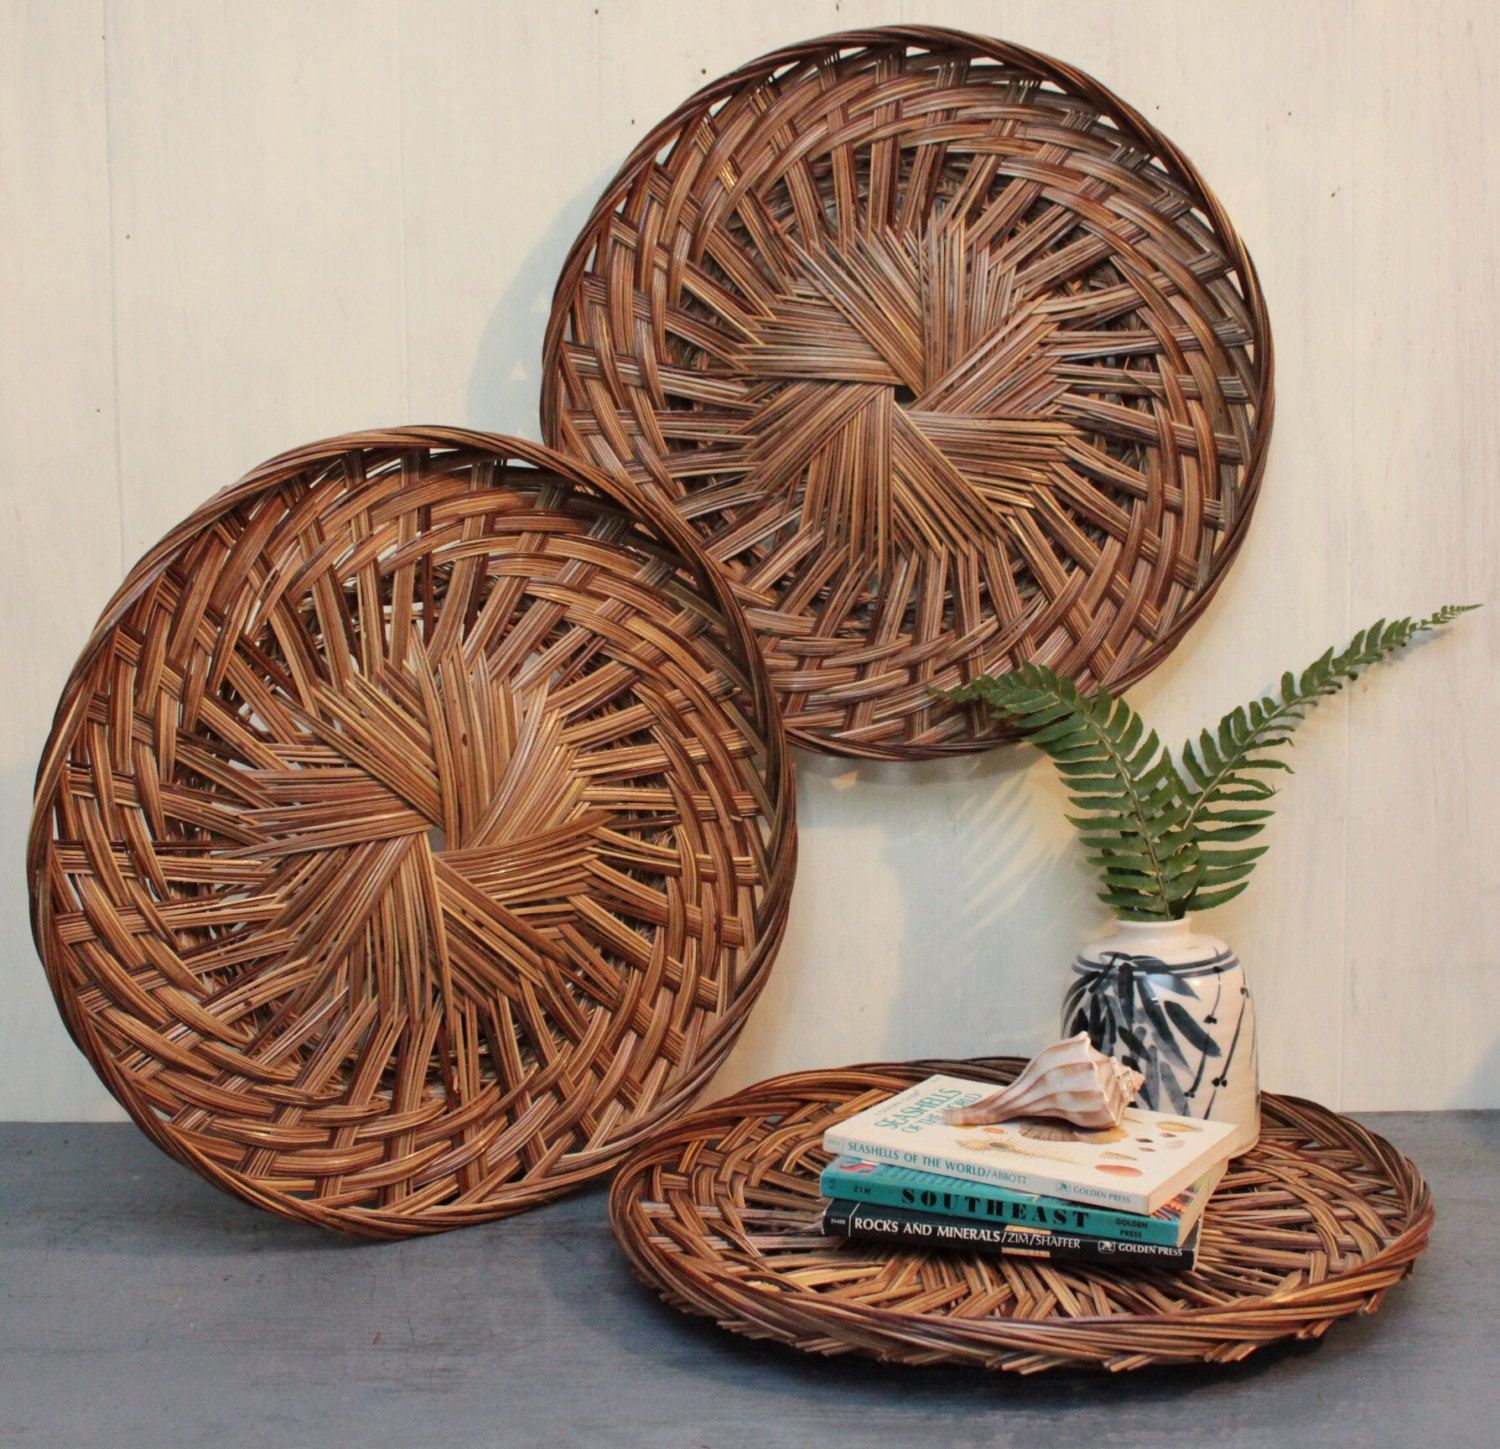 Wall Baskets Decor bamboo wall basket - large round rattan tray - shallow flat basket